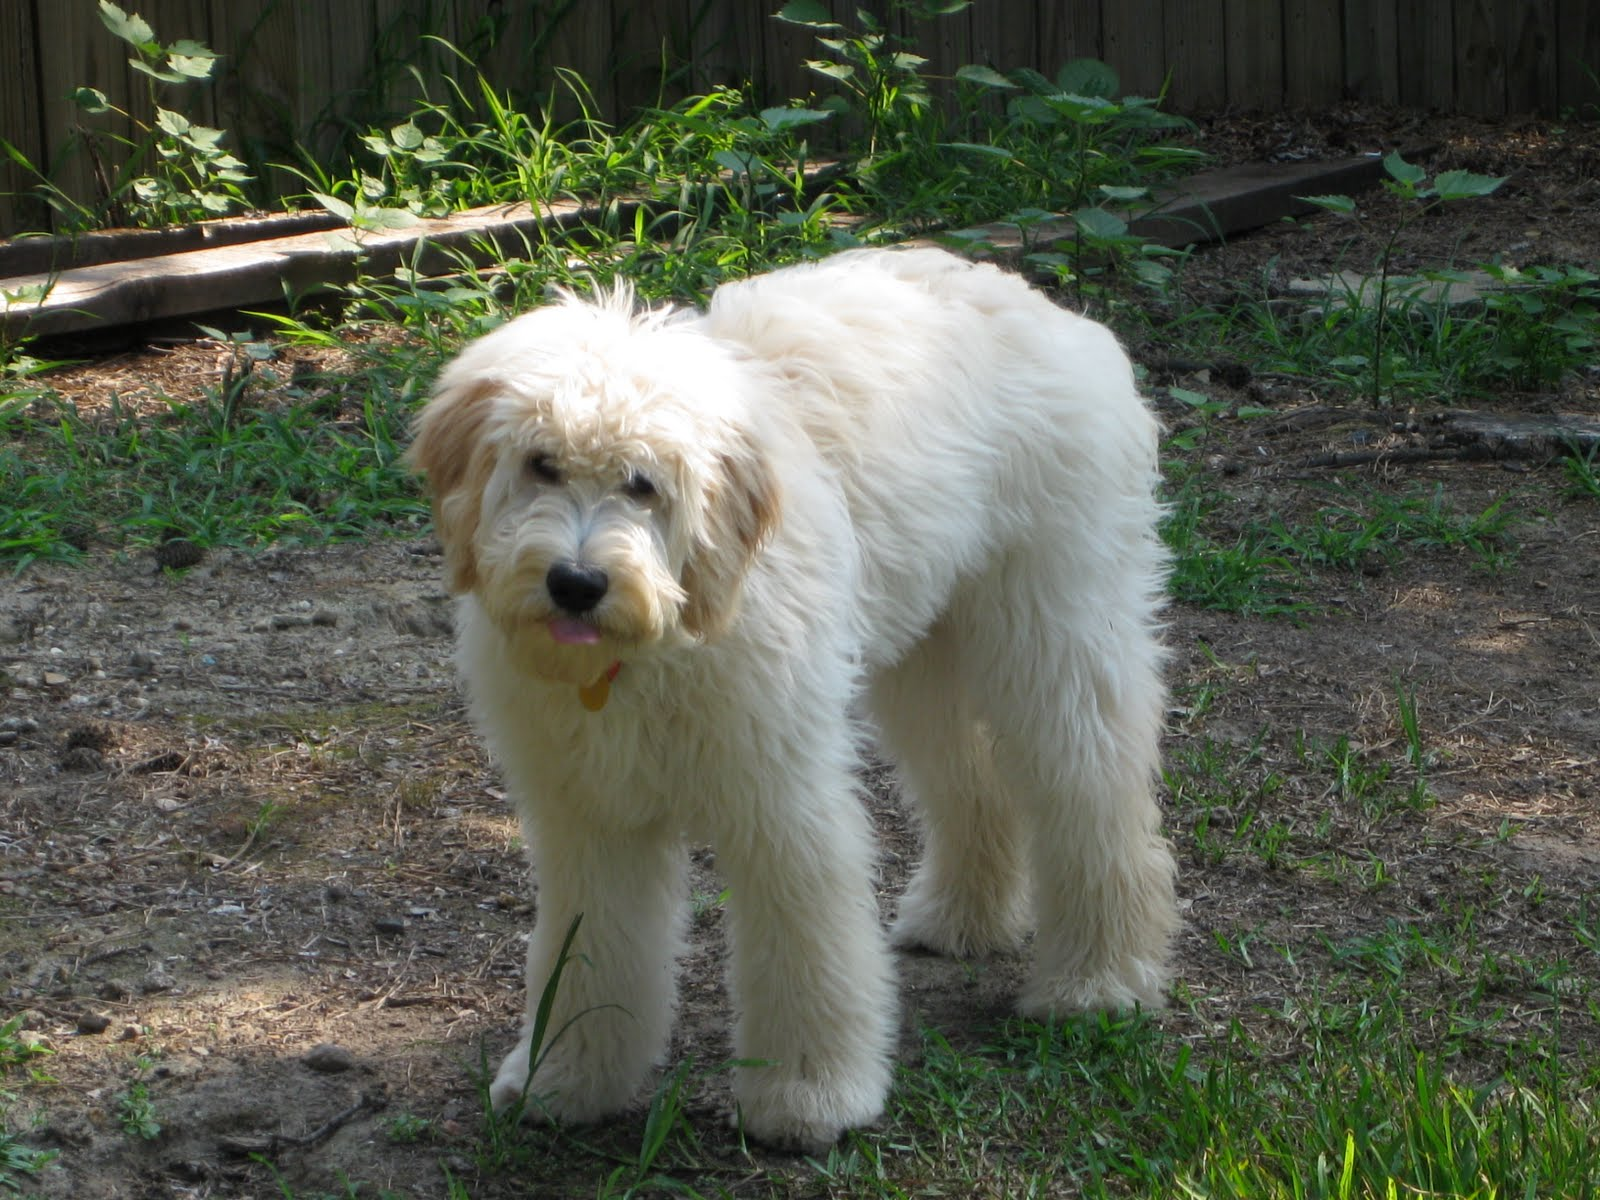 Goldendoodle Haircut Photos http://atthewalkerhouse.blogspot.com/2010/06/myth-busters-goldendoodle-edition.html